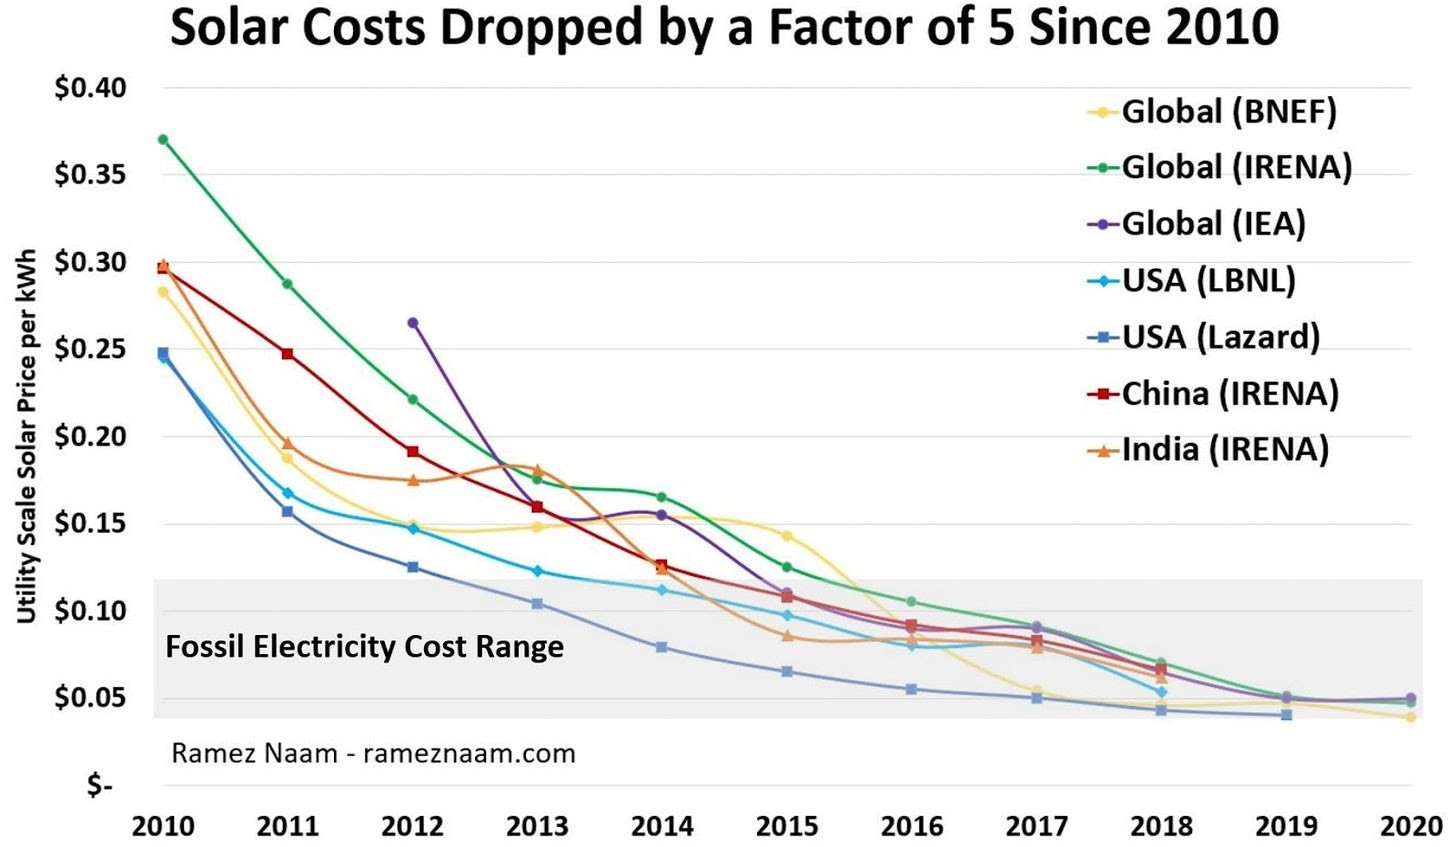 Solar power costs have decreased exponentially.